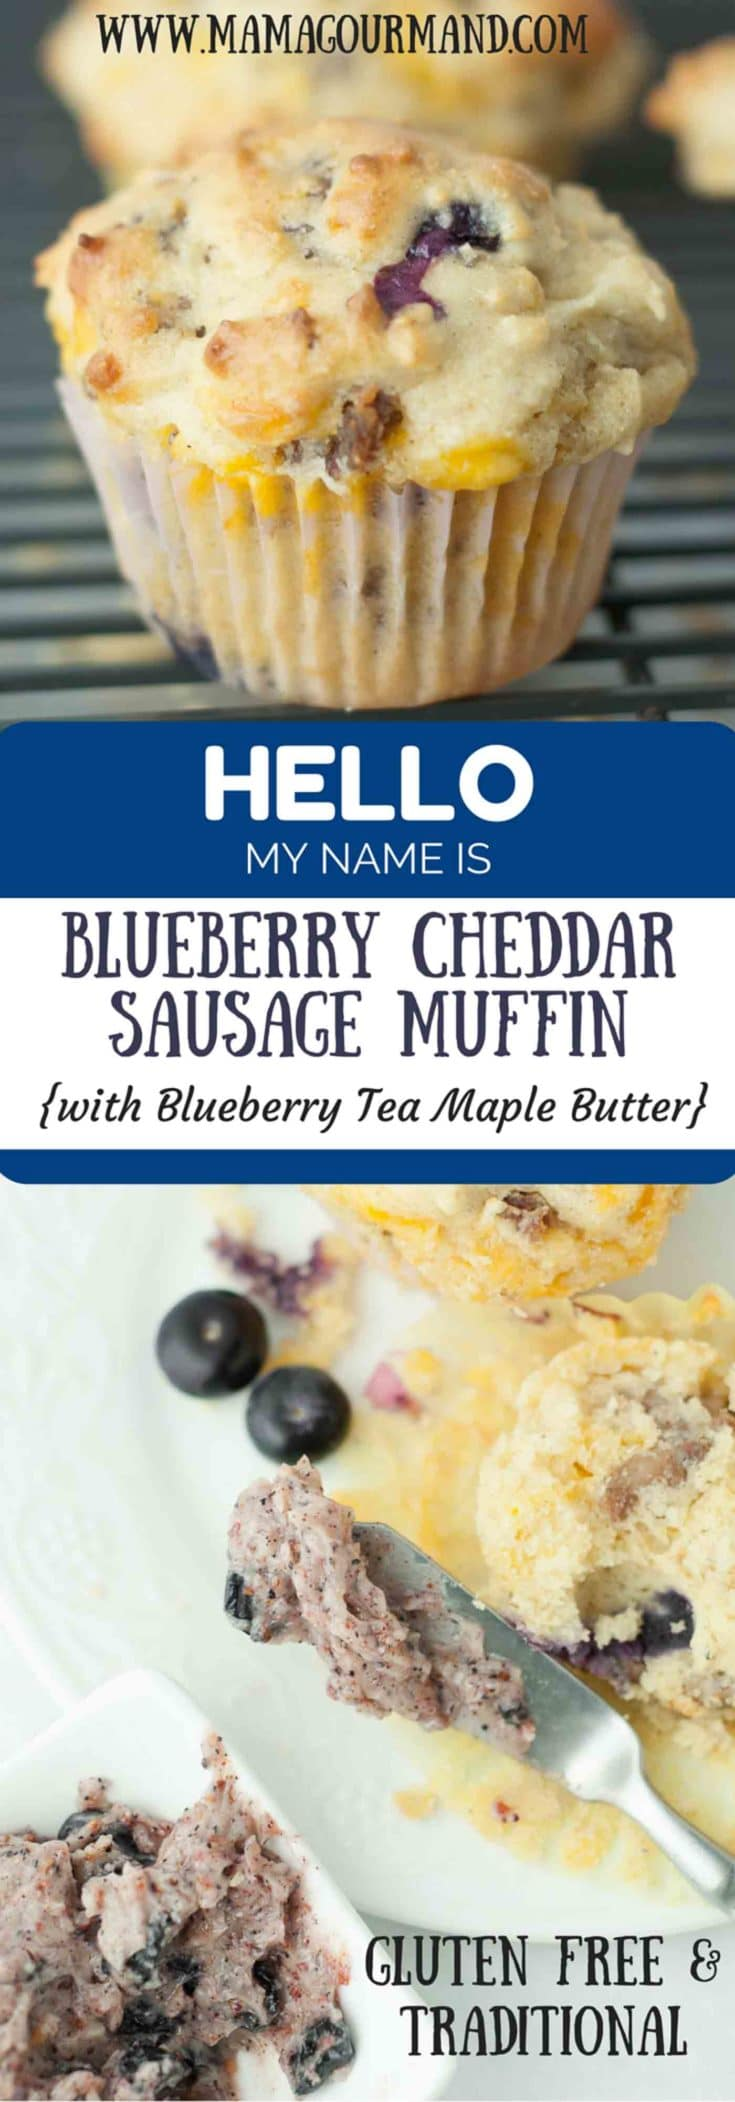 Blueberry Cheddar Sausage Muffins are a whole breakfast wrapped in one fantastic muffin recipe. The Blueberry Tea Maple Butter recipe also included is absolutely amazing spread on these warm, soft muffins. https://www.mamagourmand.com